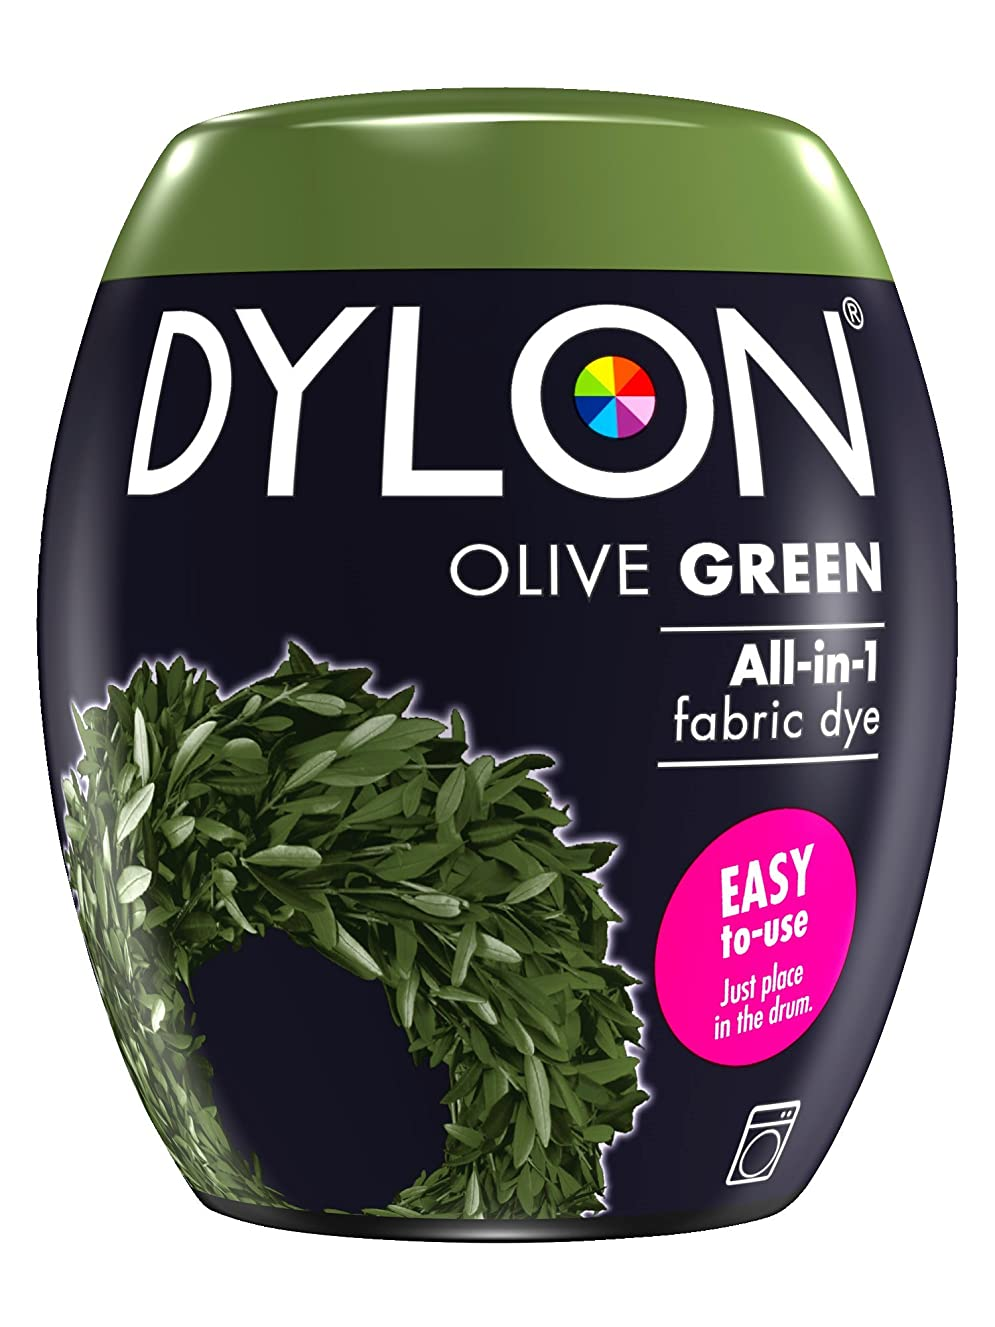 DYLON Machine Dye Pod, easy-to-use fabric colour for laundry, 350g (Olive Green)